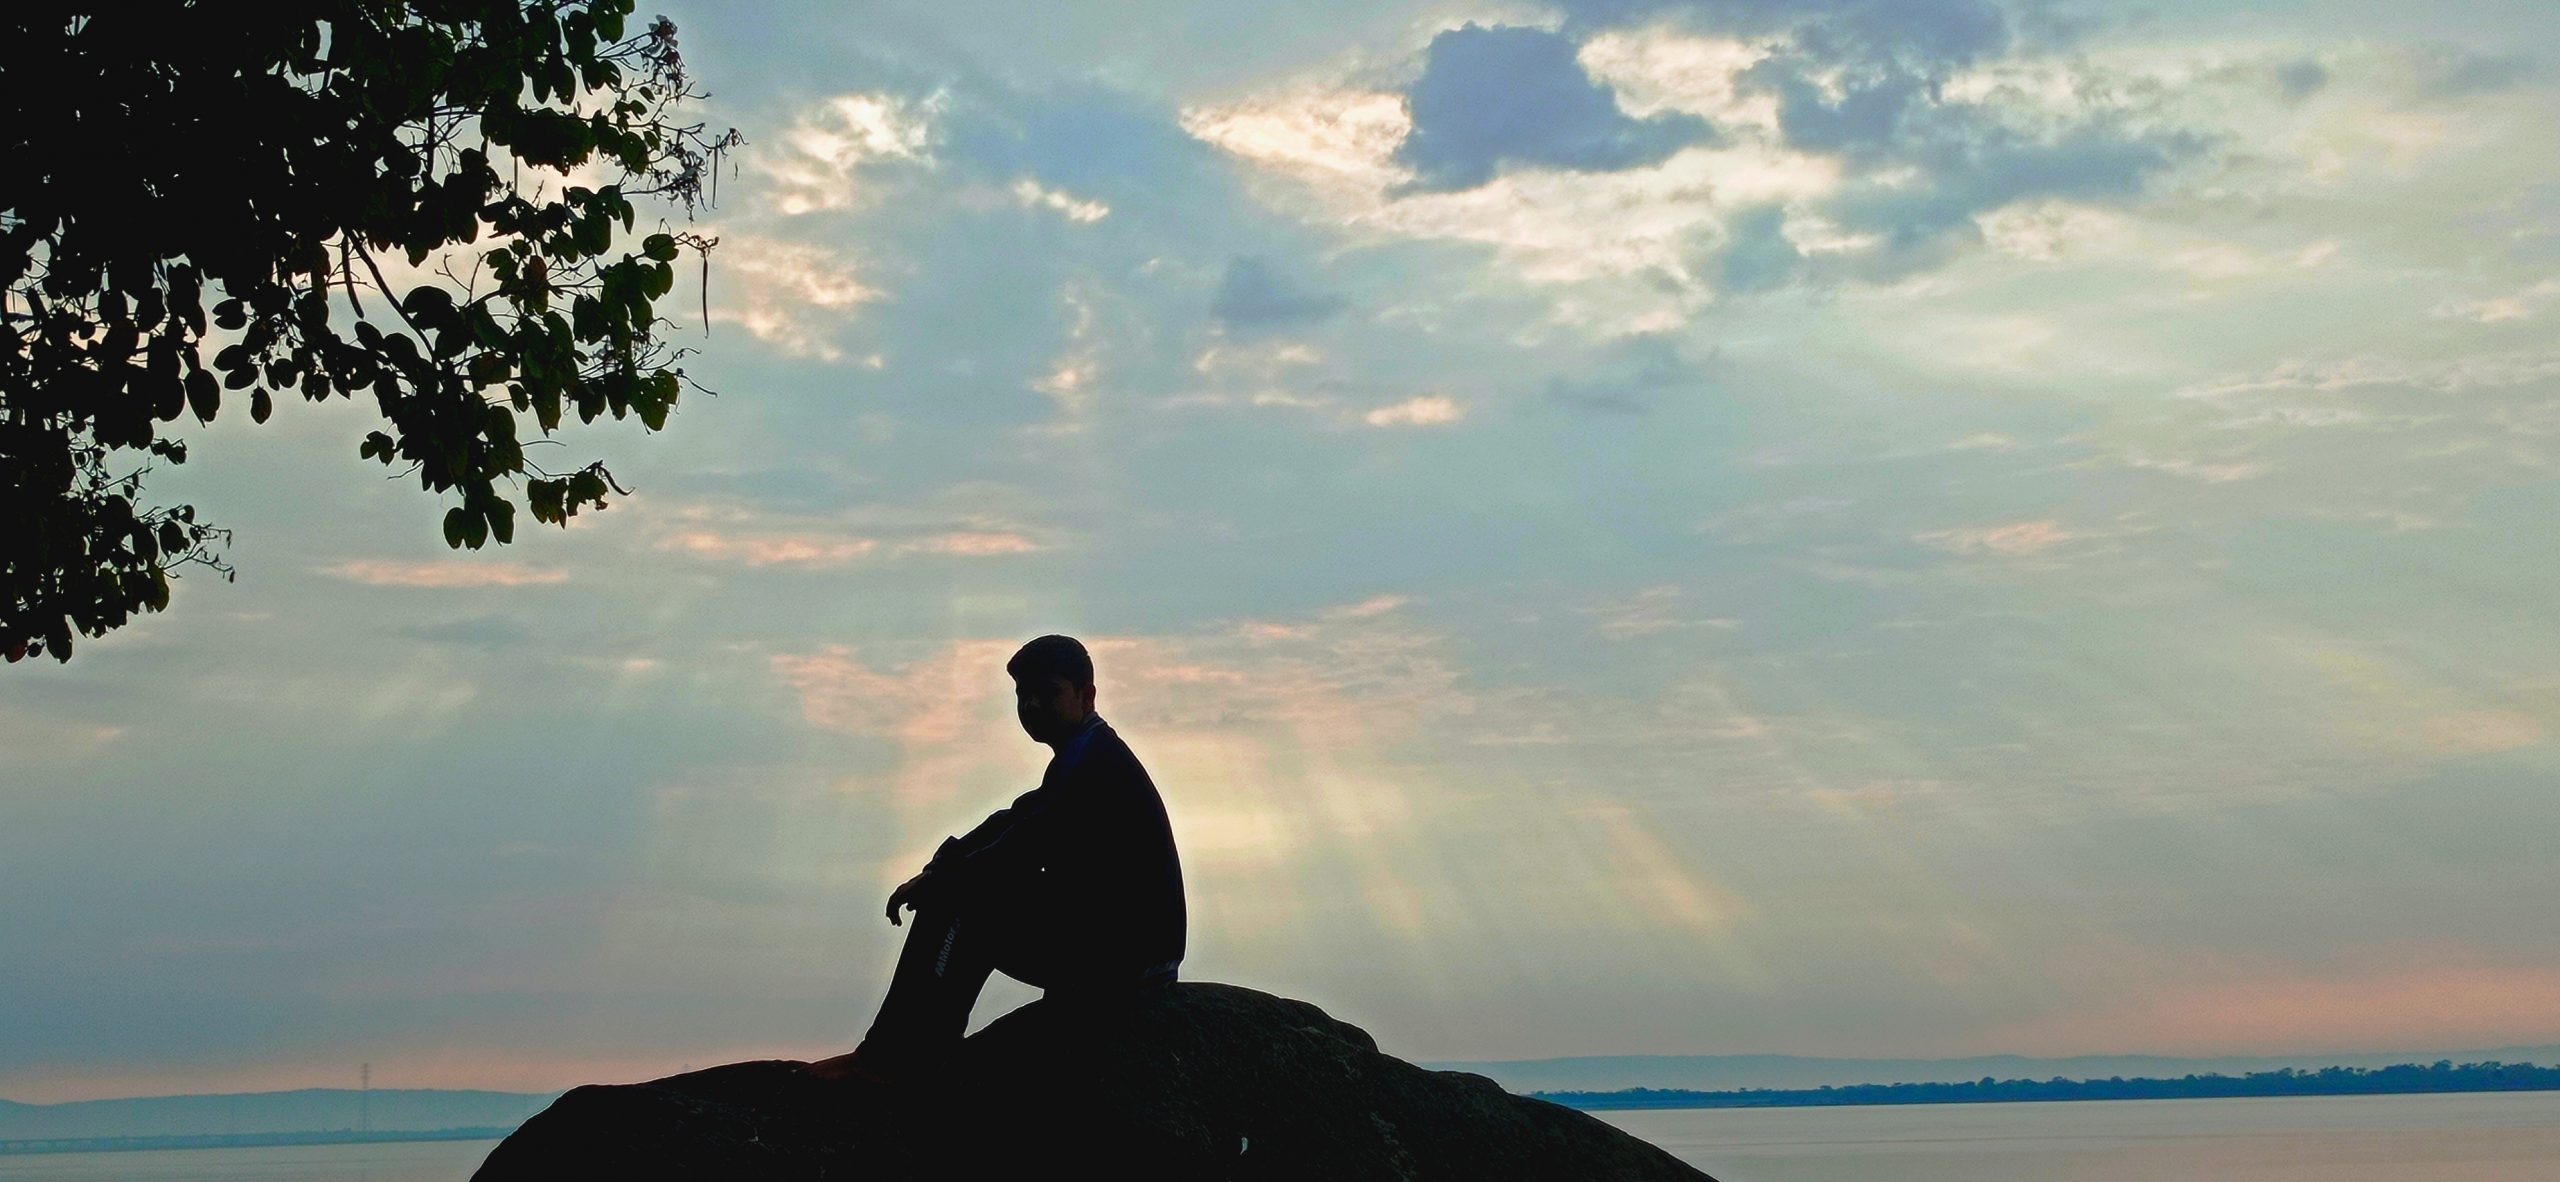 silhouette of man sitting on a rock